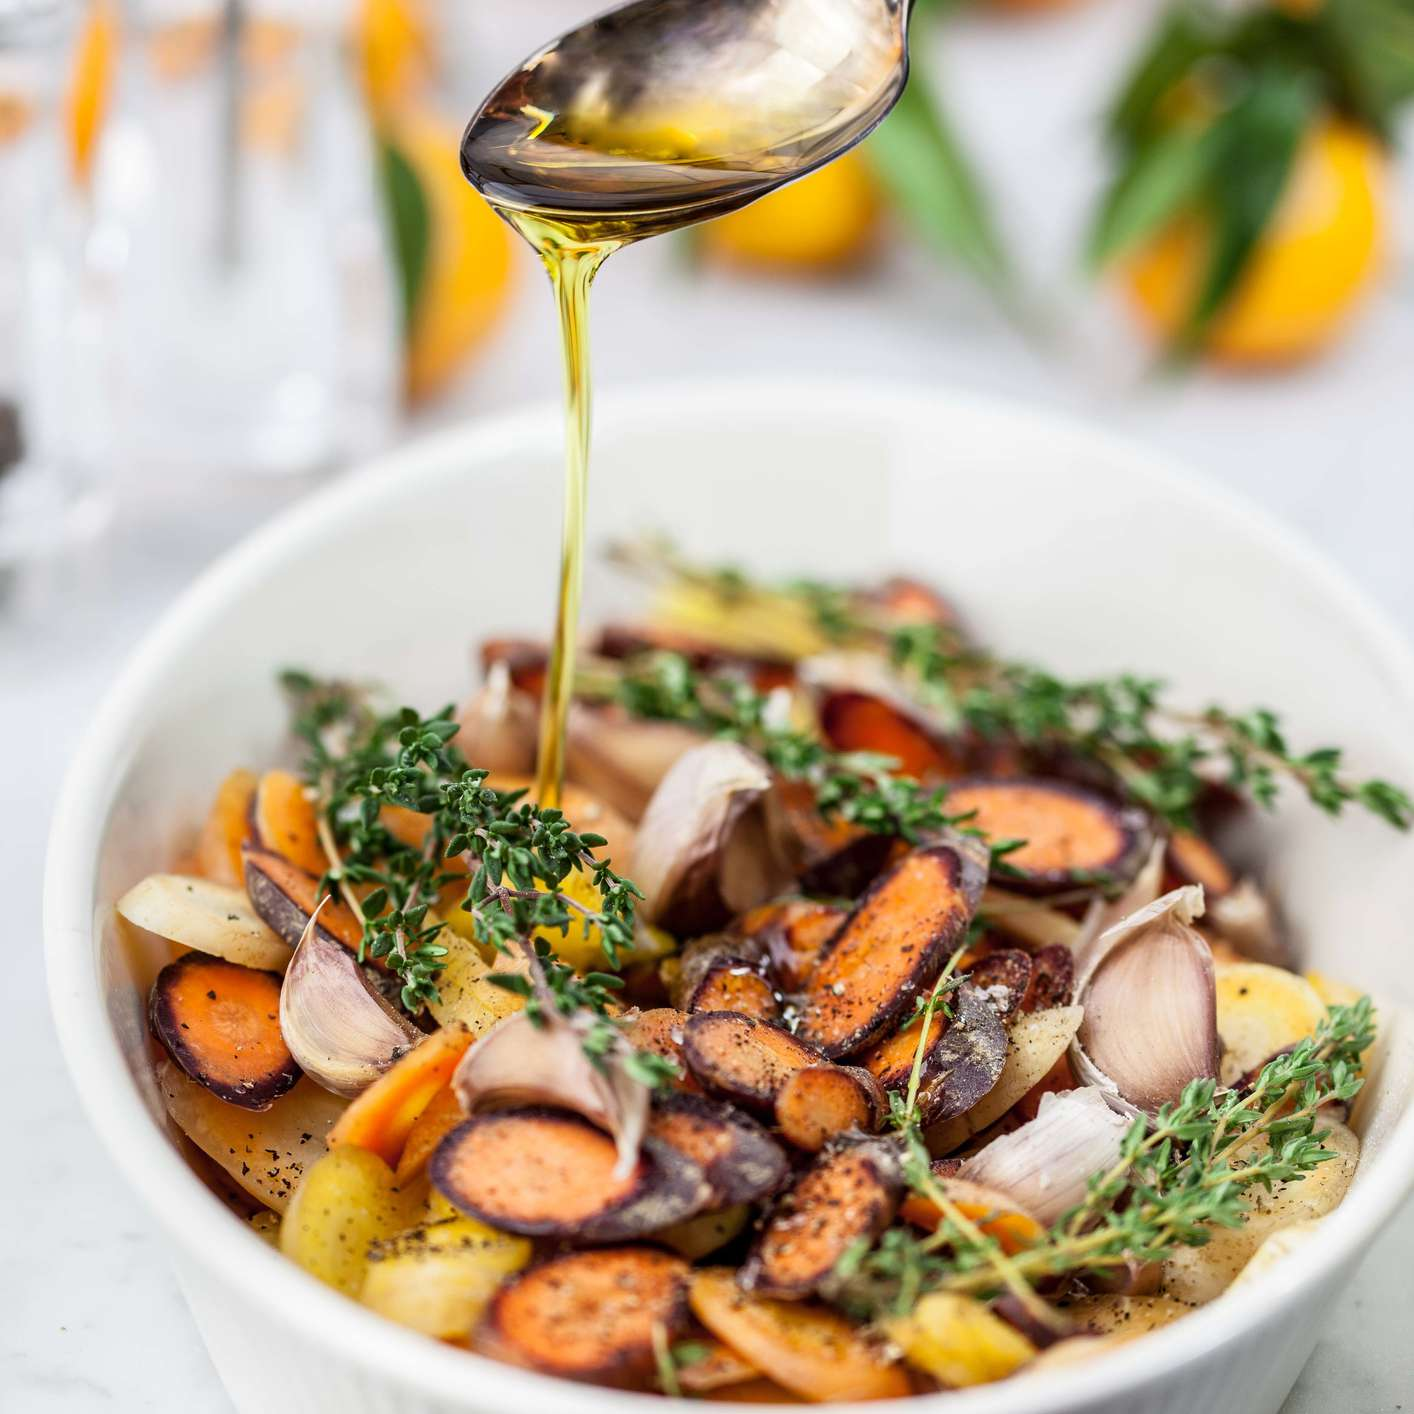 A drizzle of olive oil on a bowl of roasted vegetables